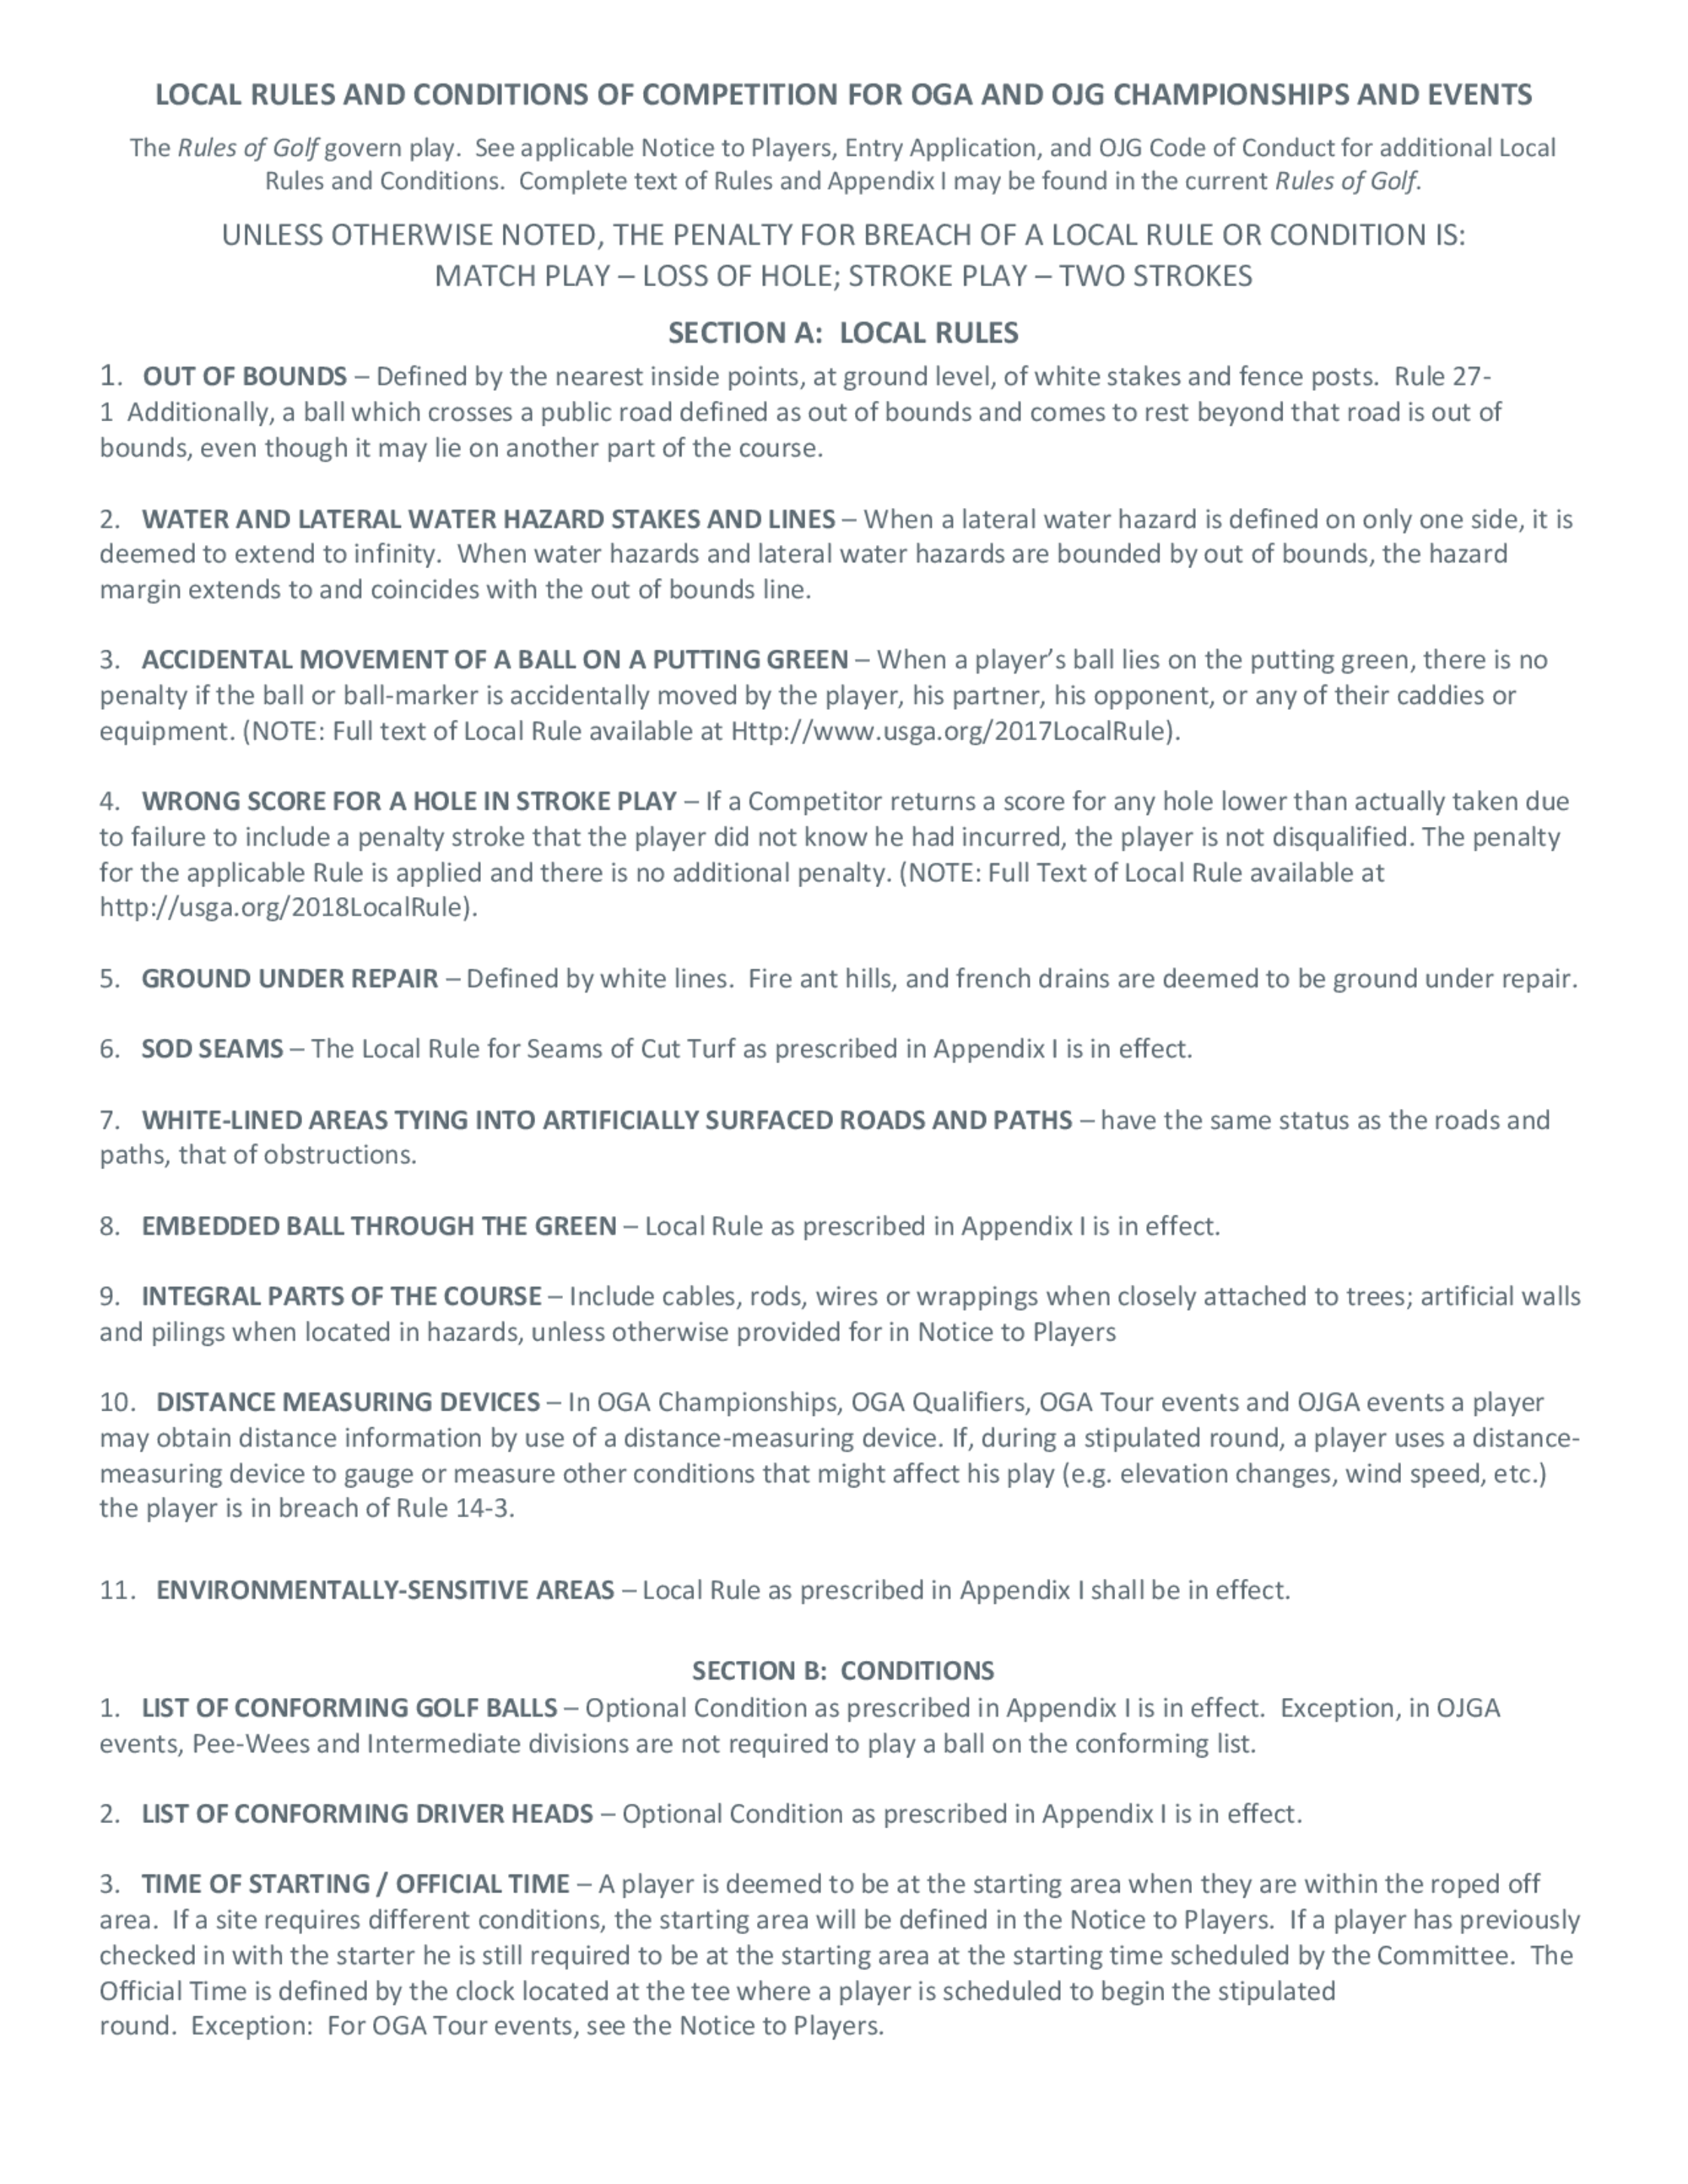 Oga local rules and conditions of competition 1